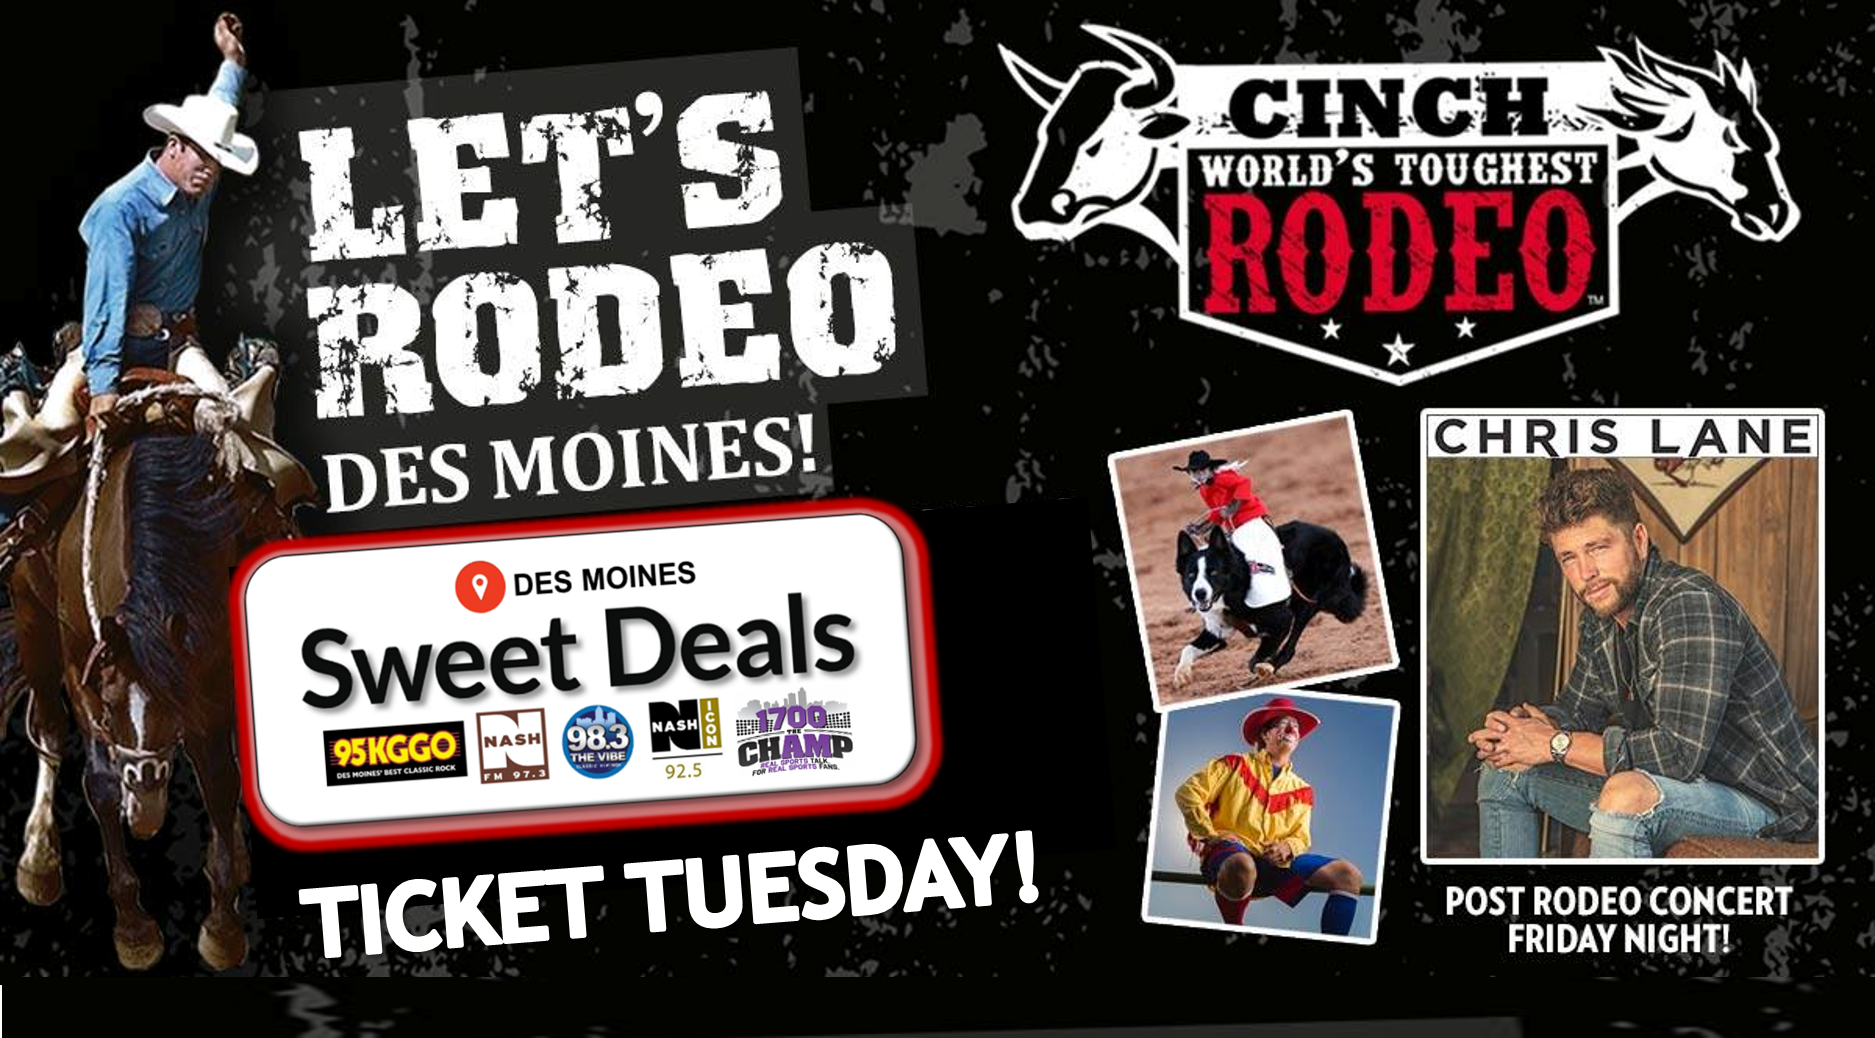 Sweet Deal – Ticket Tuesday – Cinch World's Toughest Rodeo